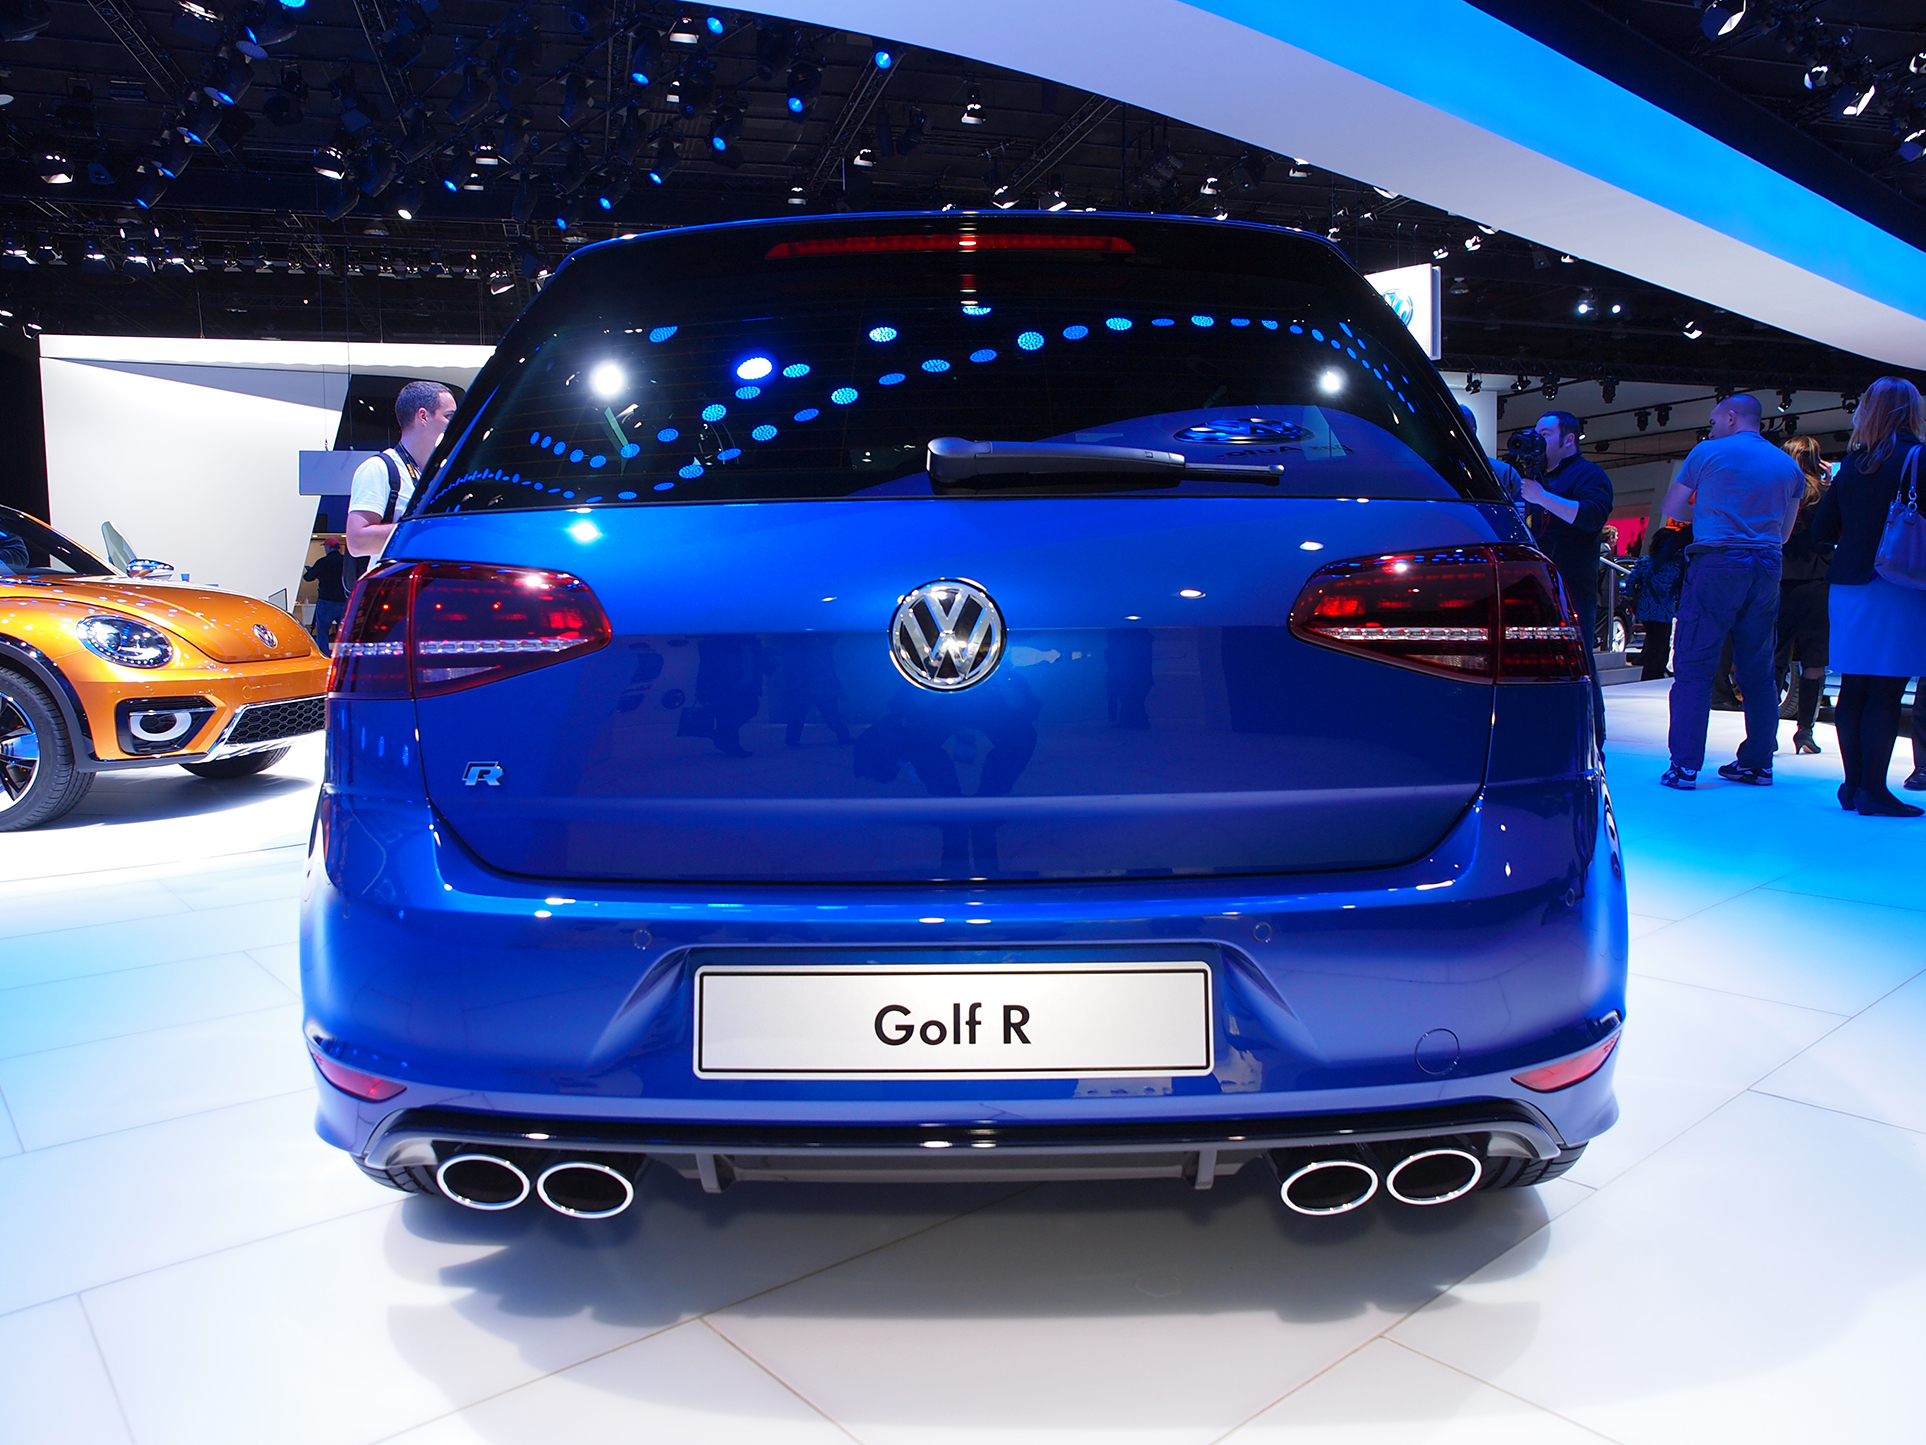 2015 volkswagen golf r is a hot hatch in detroit live photos autoevolution. Black Bedroom Furniture Sets. Home Design Ideas